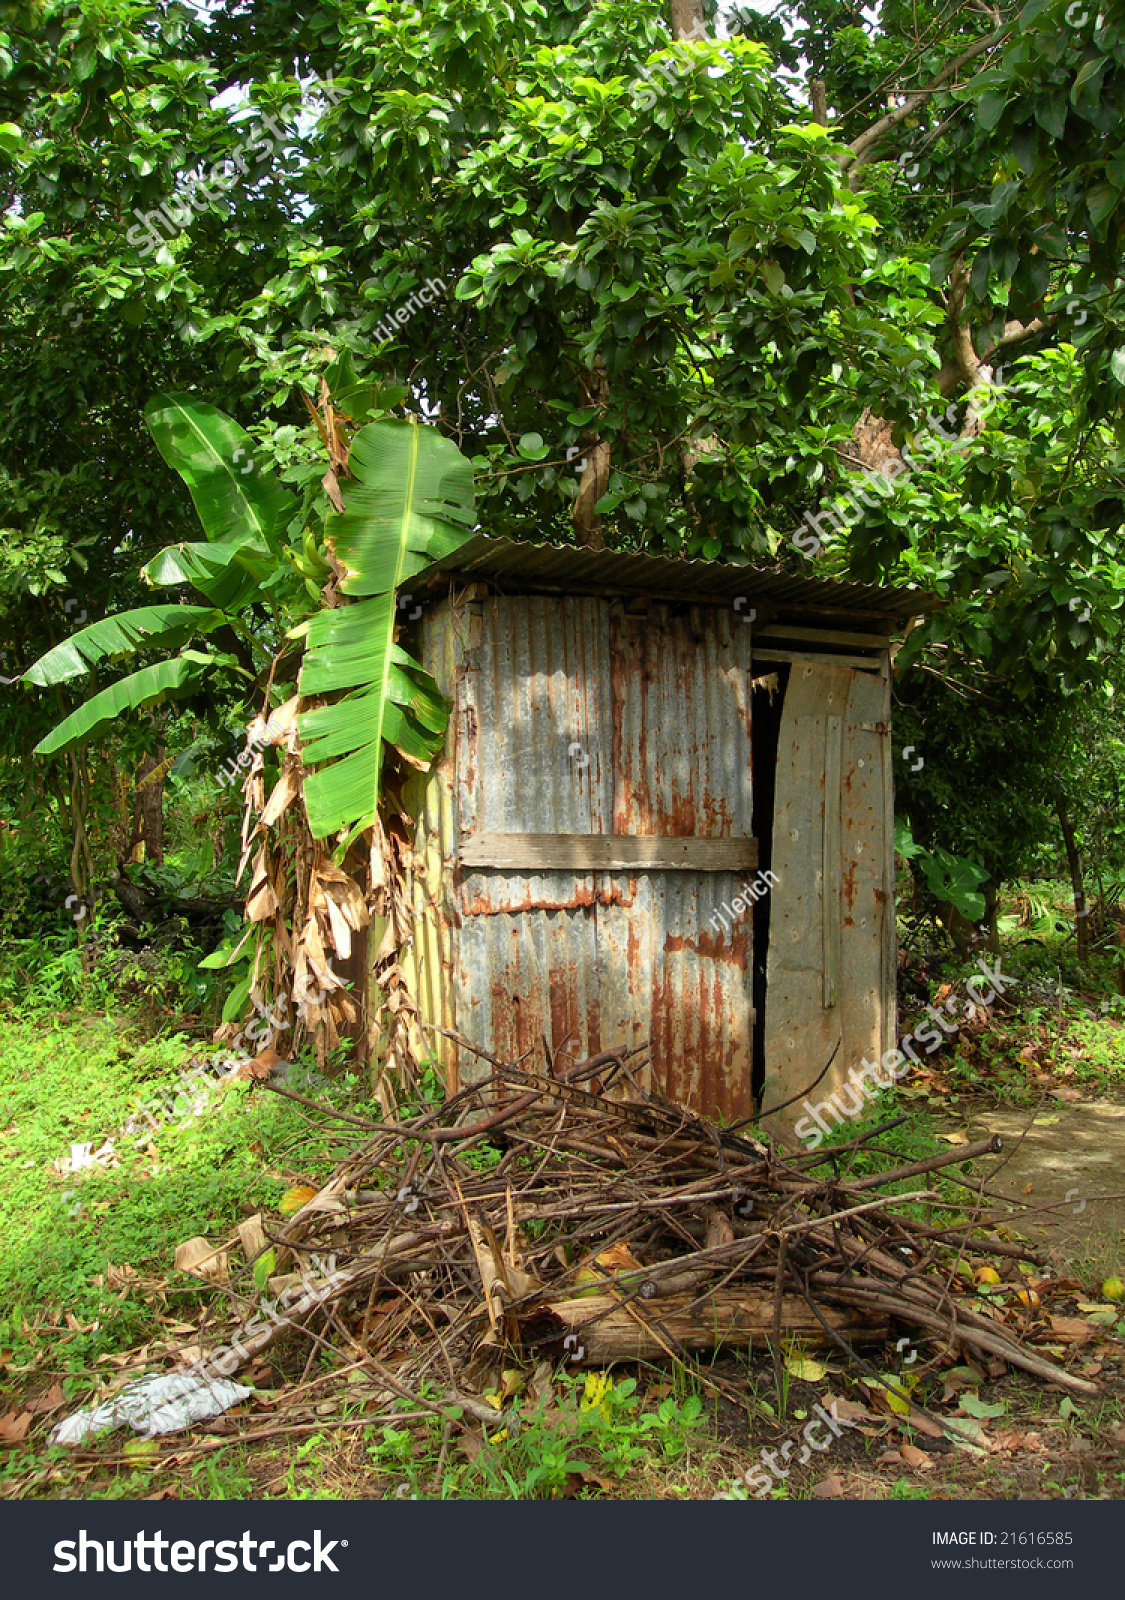 Outhouse Bathroom Zinc Sheet Metal House With Banana Tree Corn - Outhouse bathroom